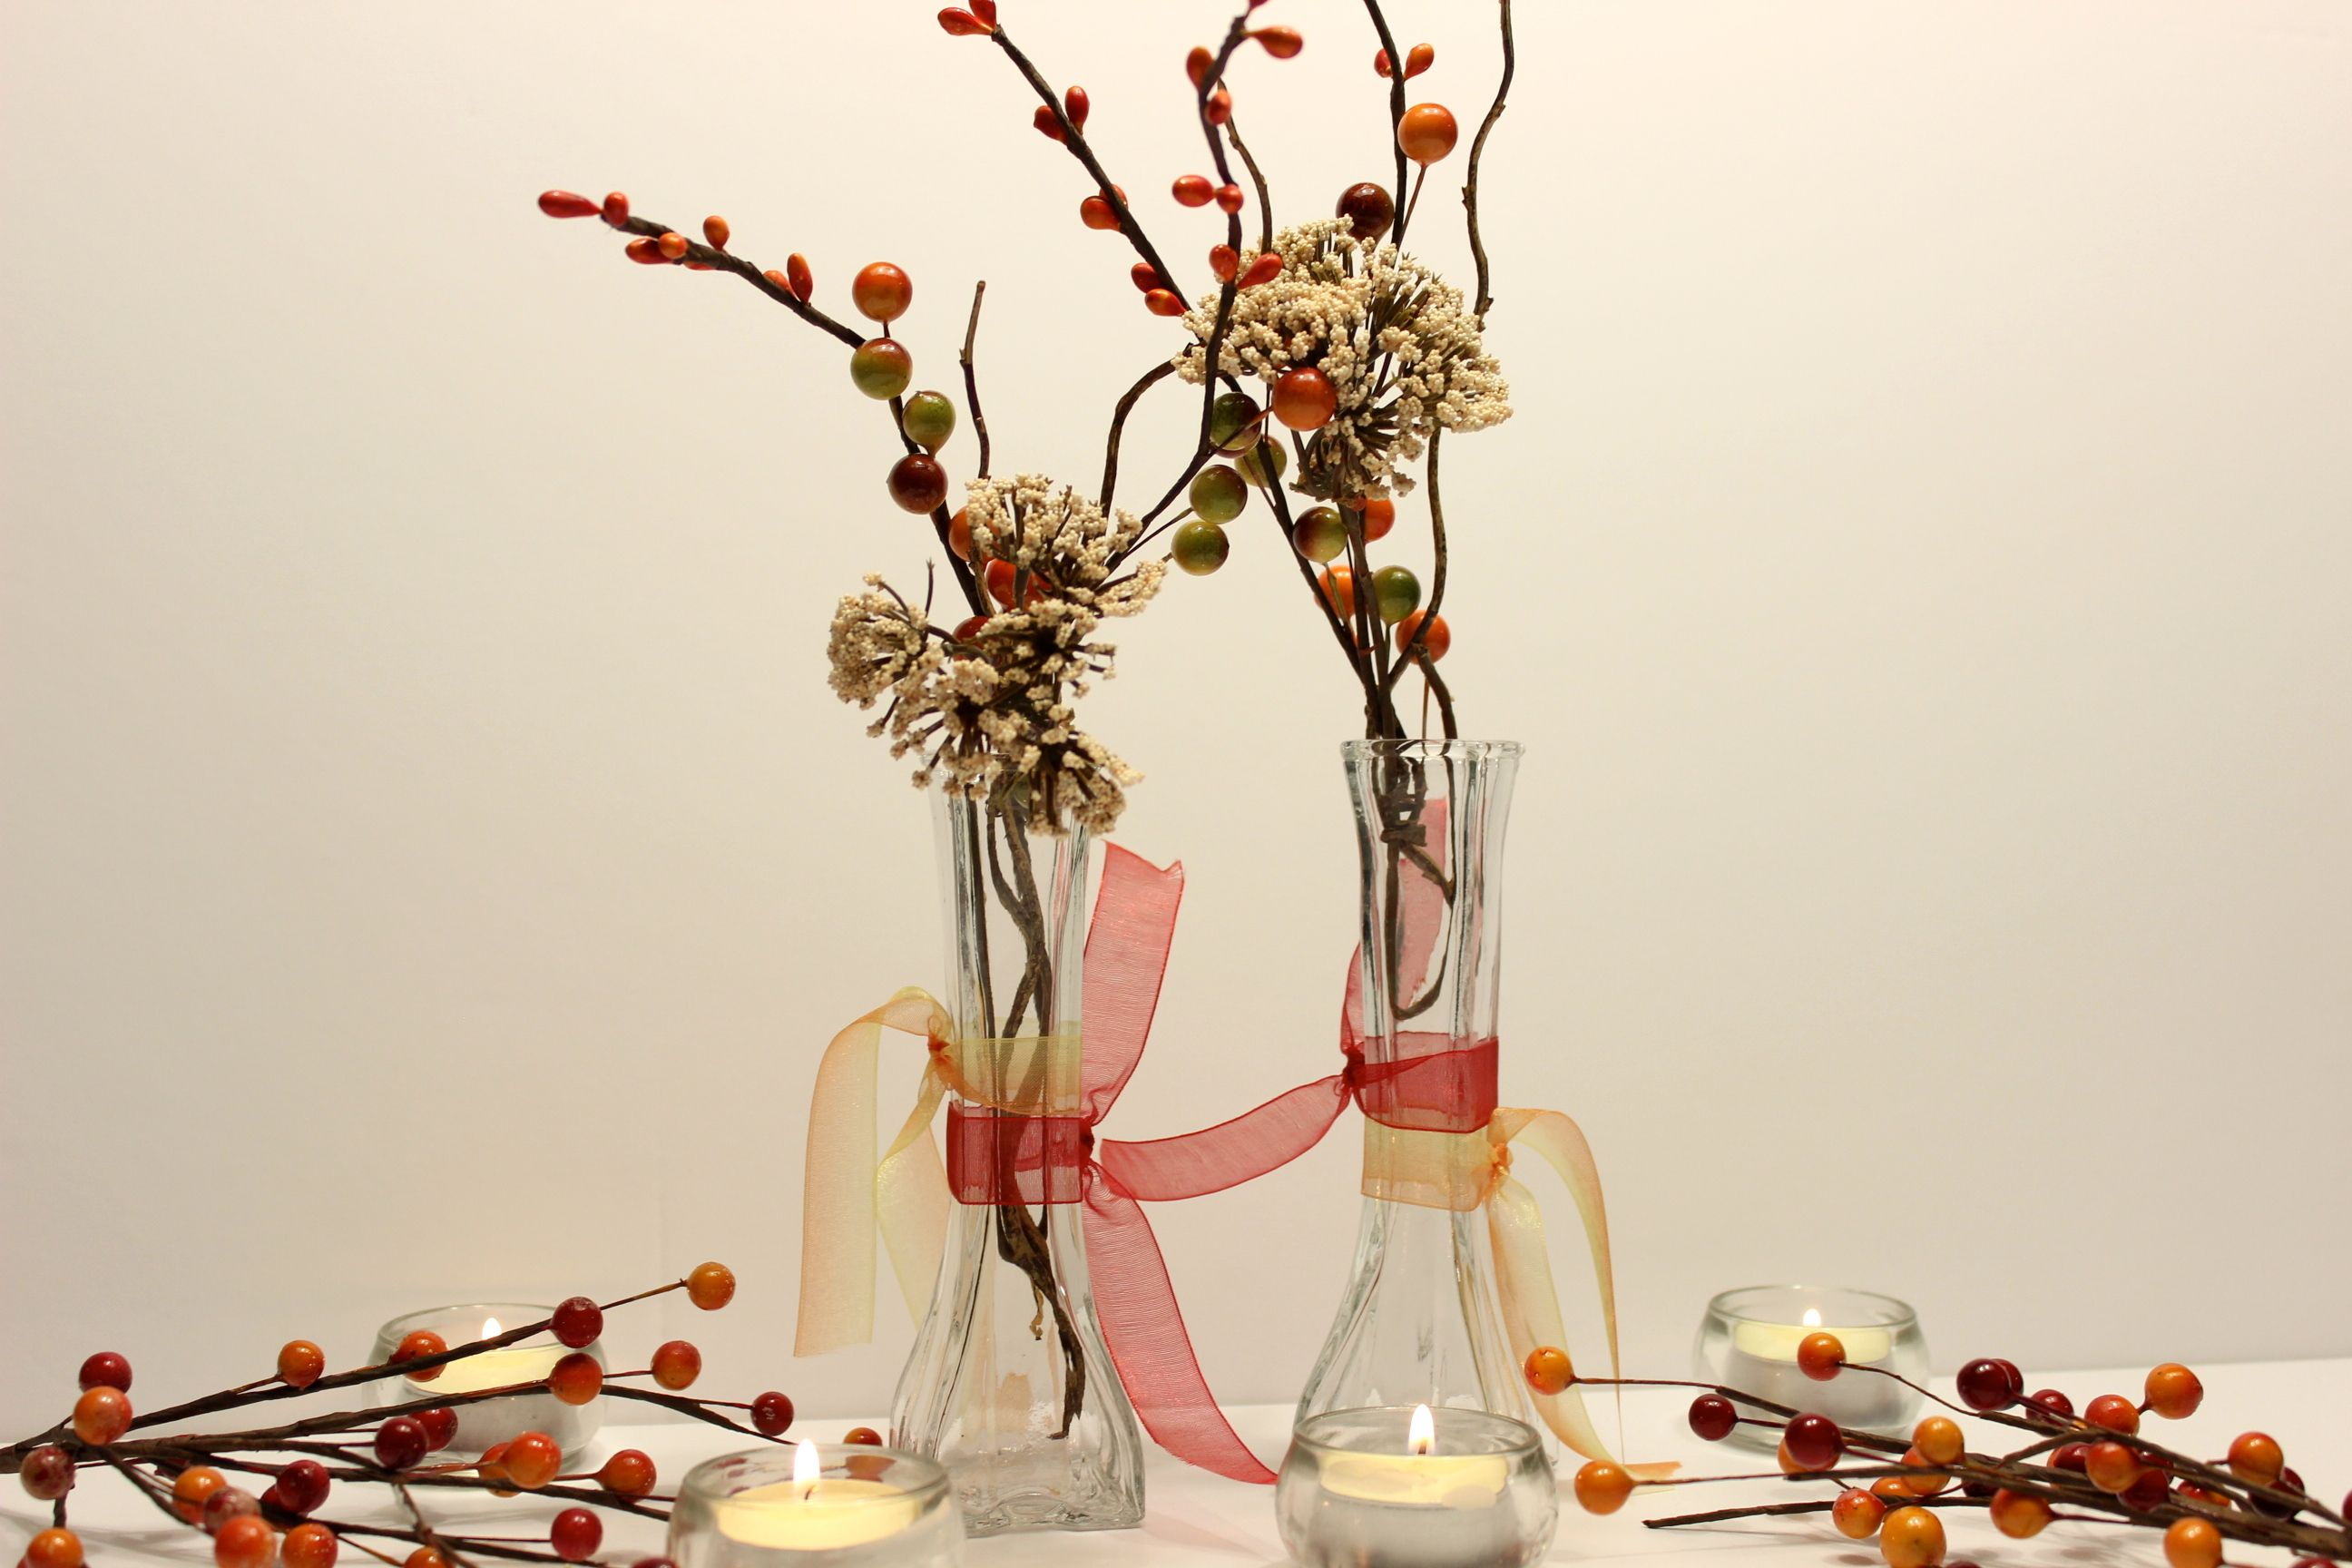 beautiful #rustic #fall #wedding centerpieces or decor! Original Piccanti Creation! https://www.facebook.com/pages/Piccanti-Creations